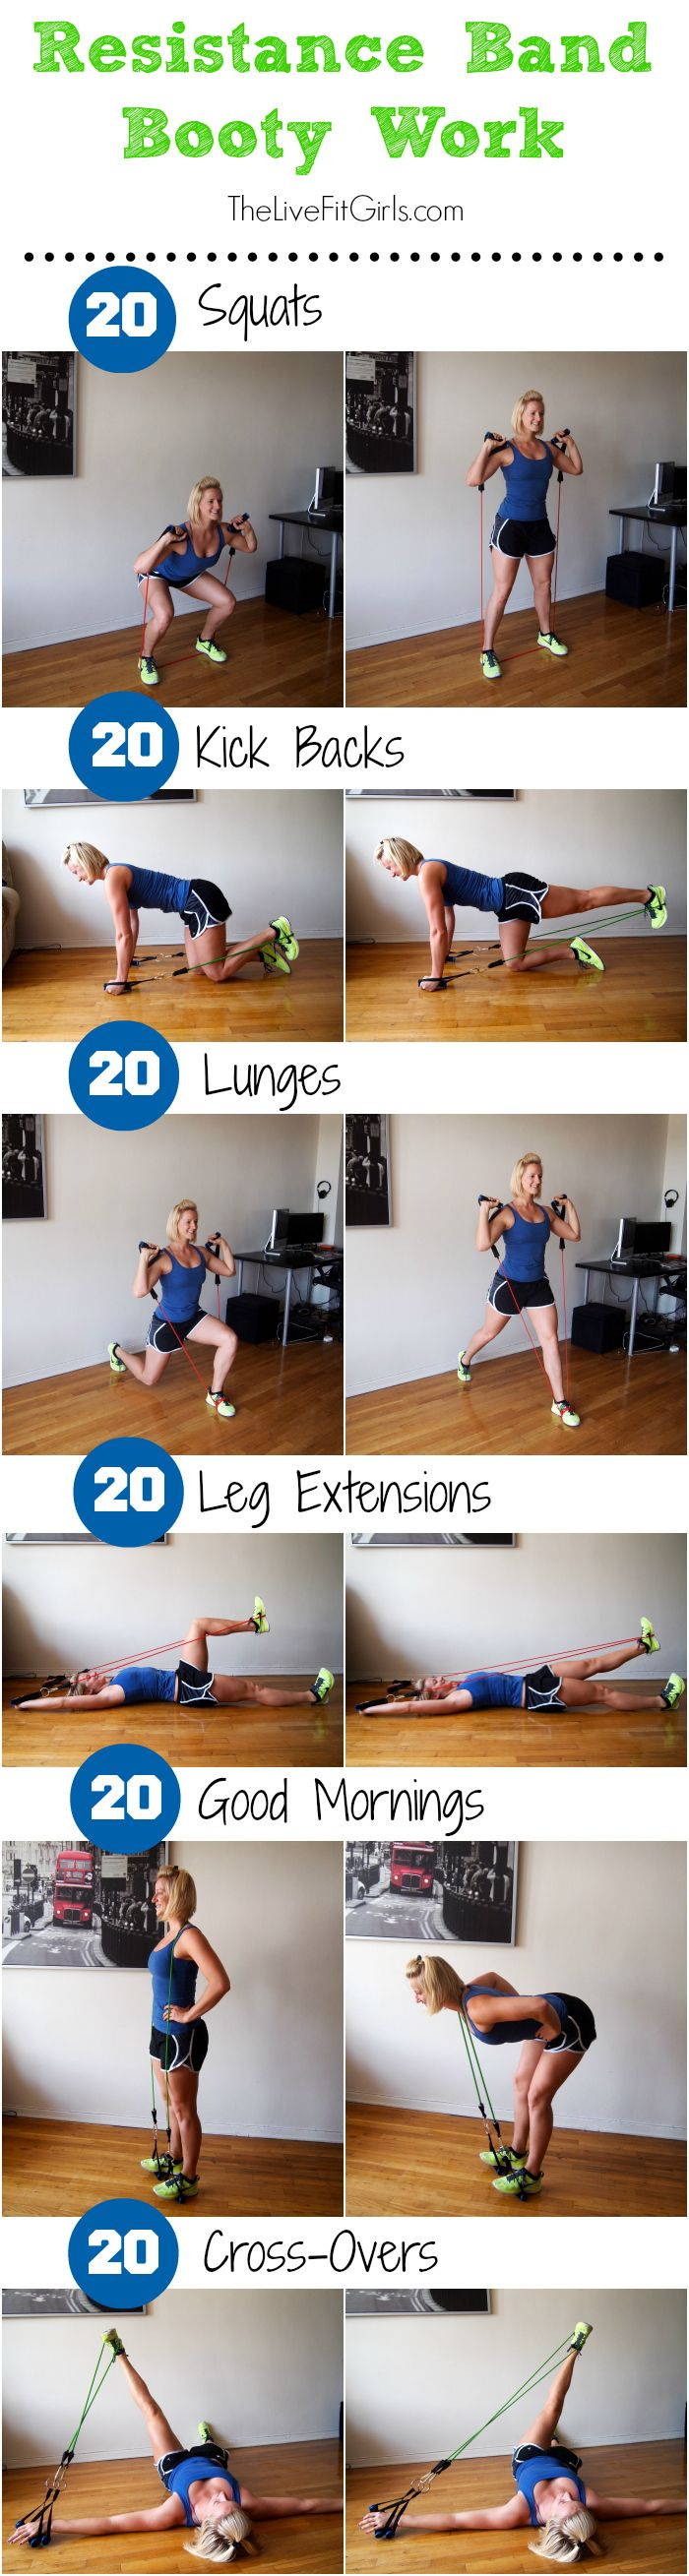 Get that booty burning with this Resistance Band Booty Workout!